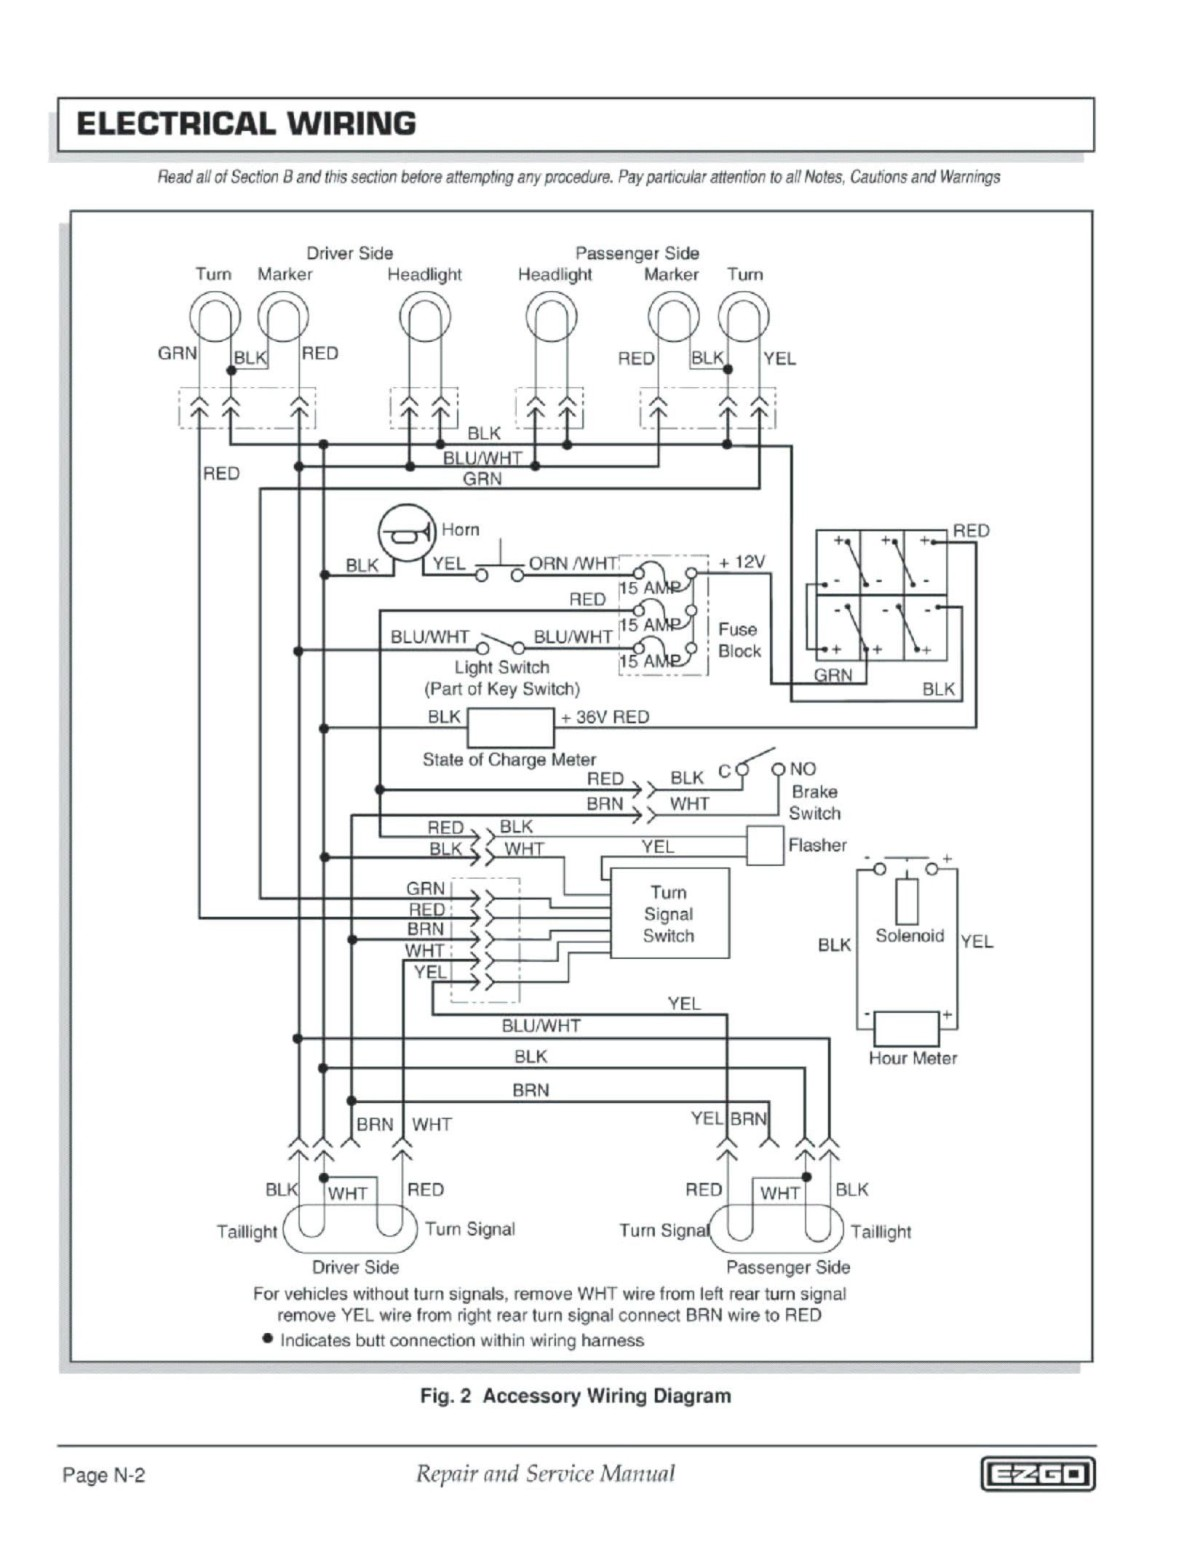 Wiring Diagram 7 Pin Trailer Socket